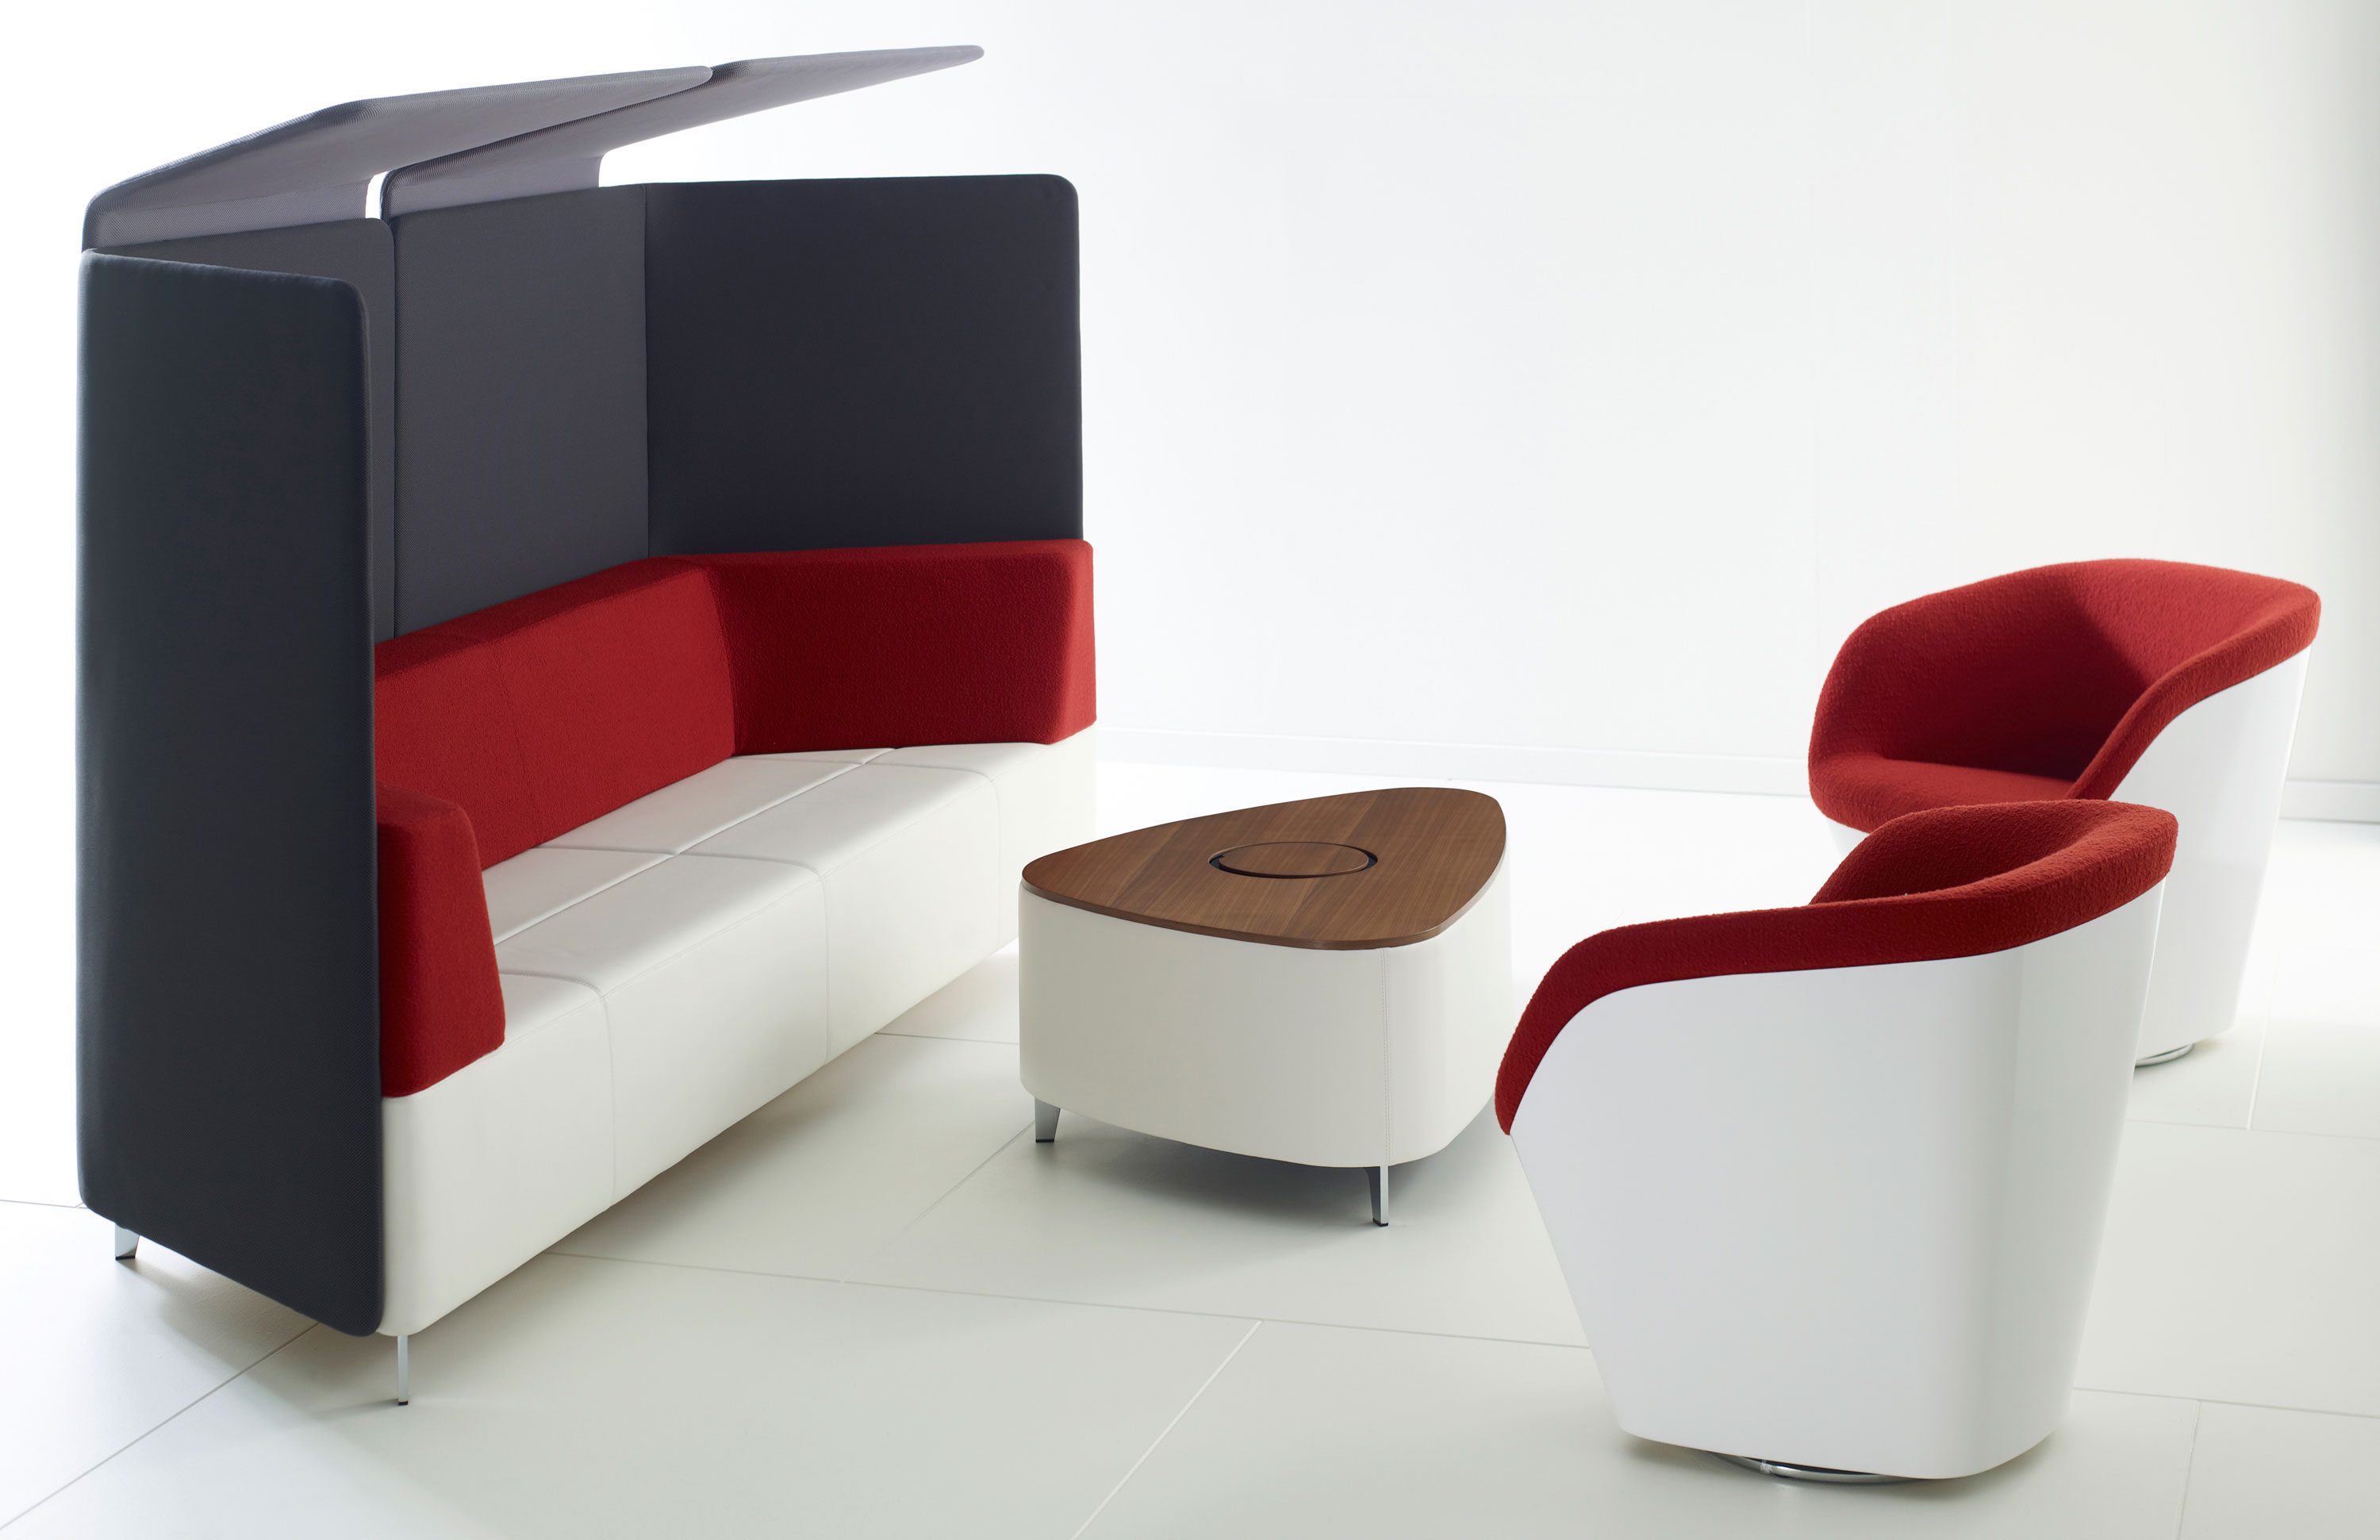 Acoustic furniture more privacy less noise modern office furniture - Office furnitur ...